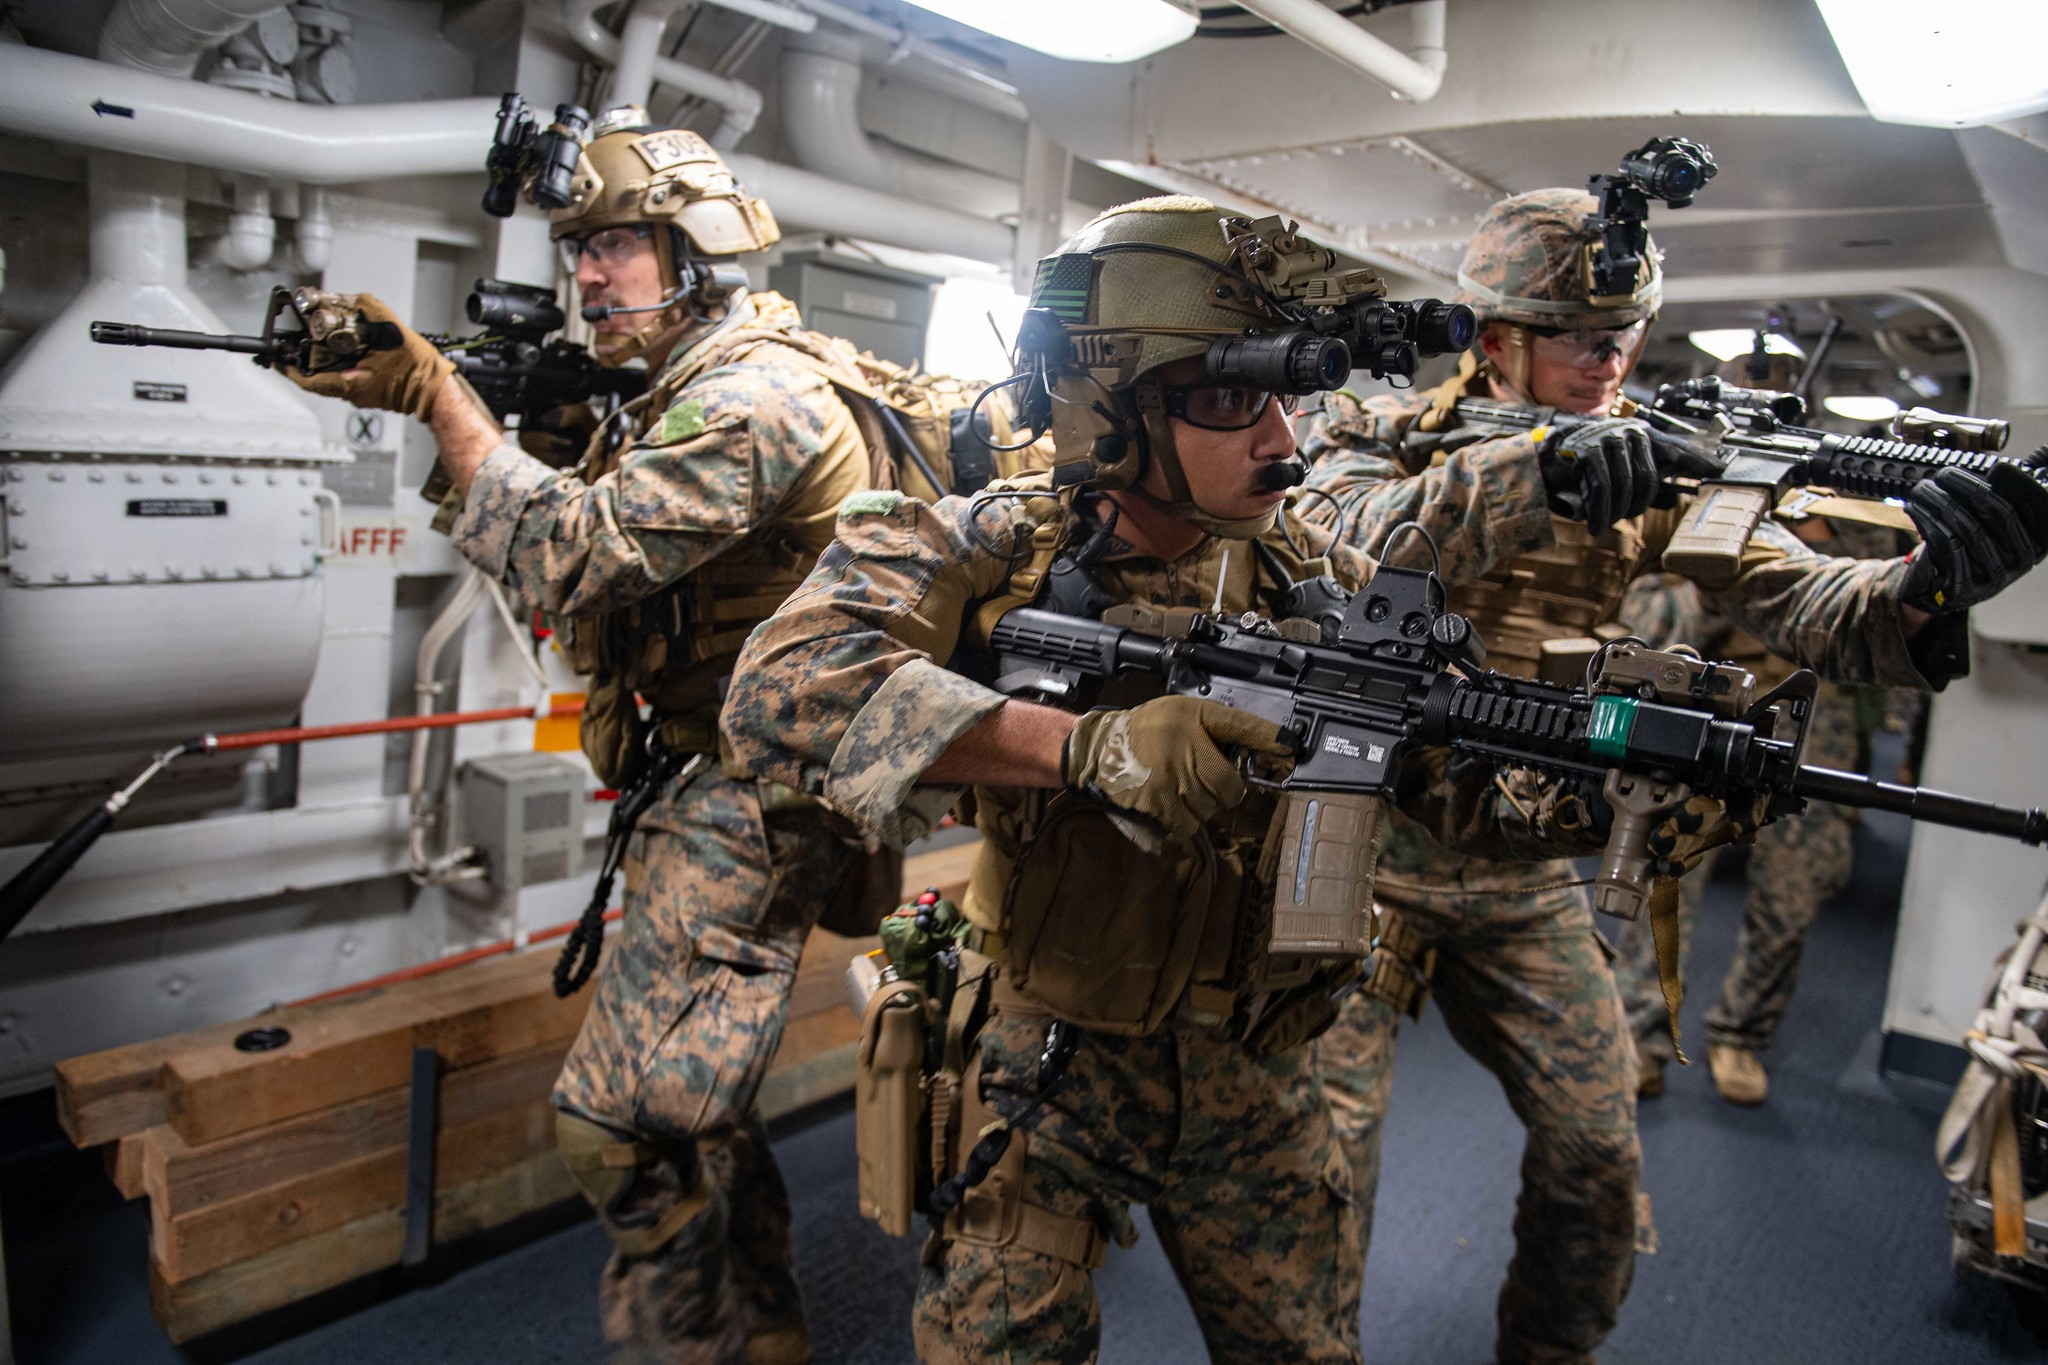 Marines attached to the 31st Marine Expeditionary Unit (MEU) search amphibious transport dock ship USS New Orleans (LPD 18) on June 14, 2021, during a maritime raid force training evolution with USS Germantown (LSD 42) in the East China Sea. (MC2 Desmond Parks/Navy)